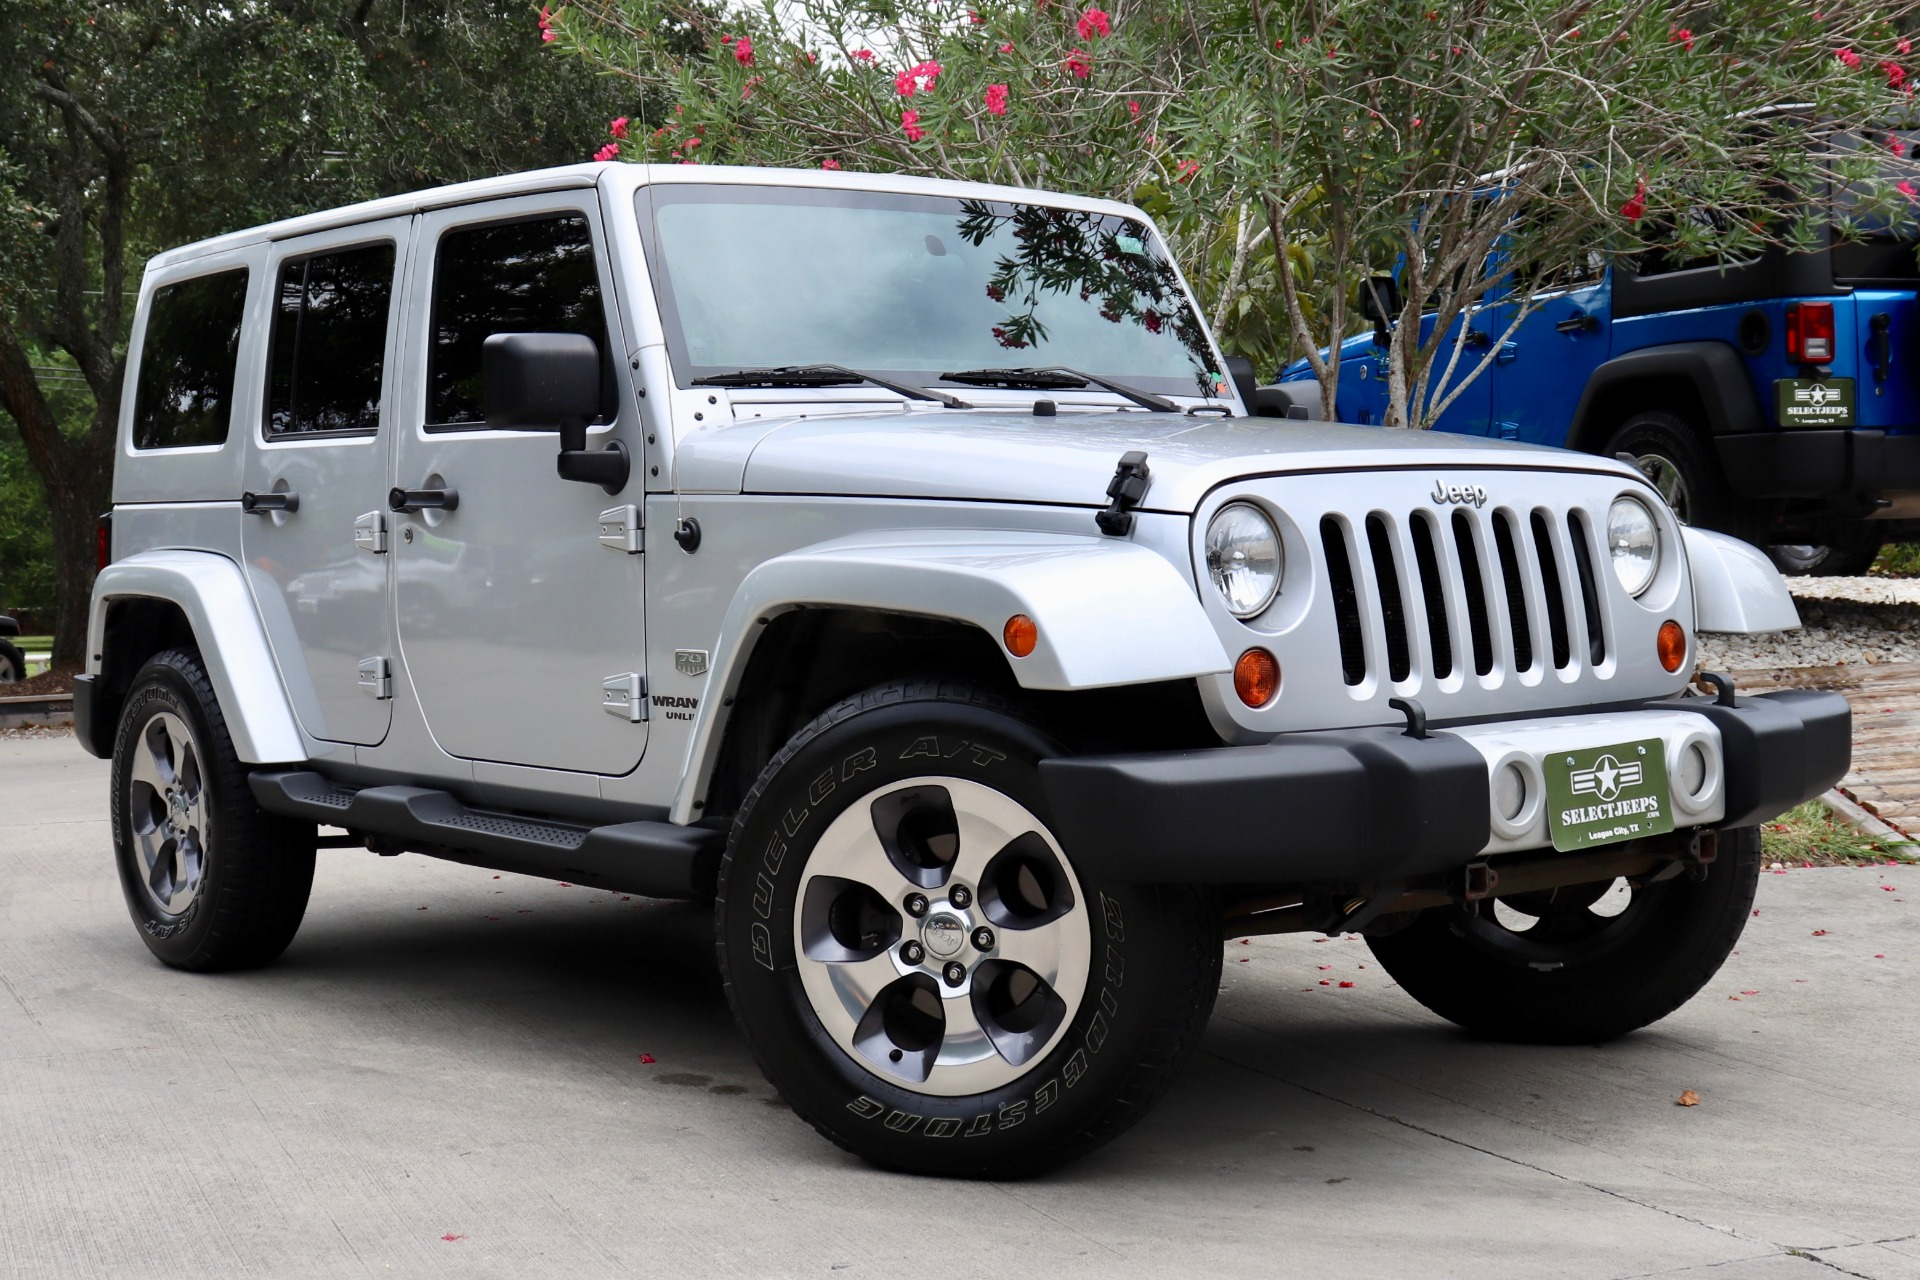 Used-2011-Jeep-Wrangler-Unlimited-4WD-4dr-70th-Anniversary-*Ltd-Avail*